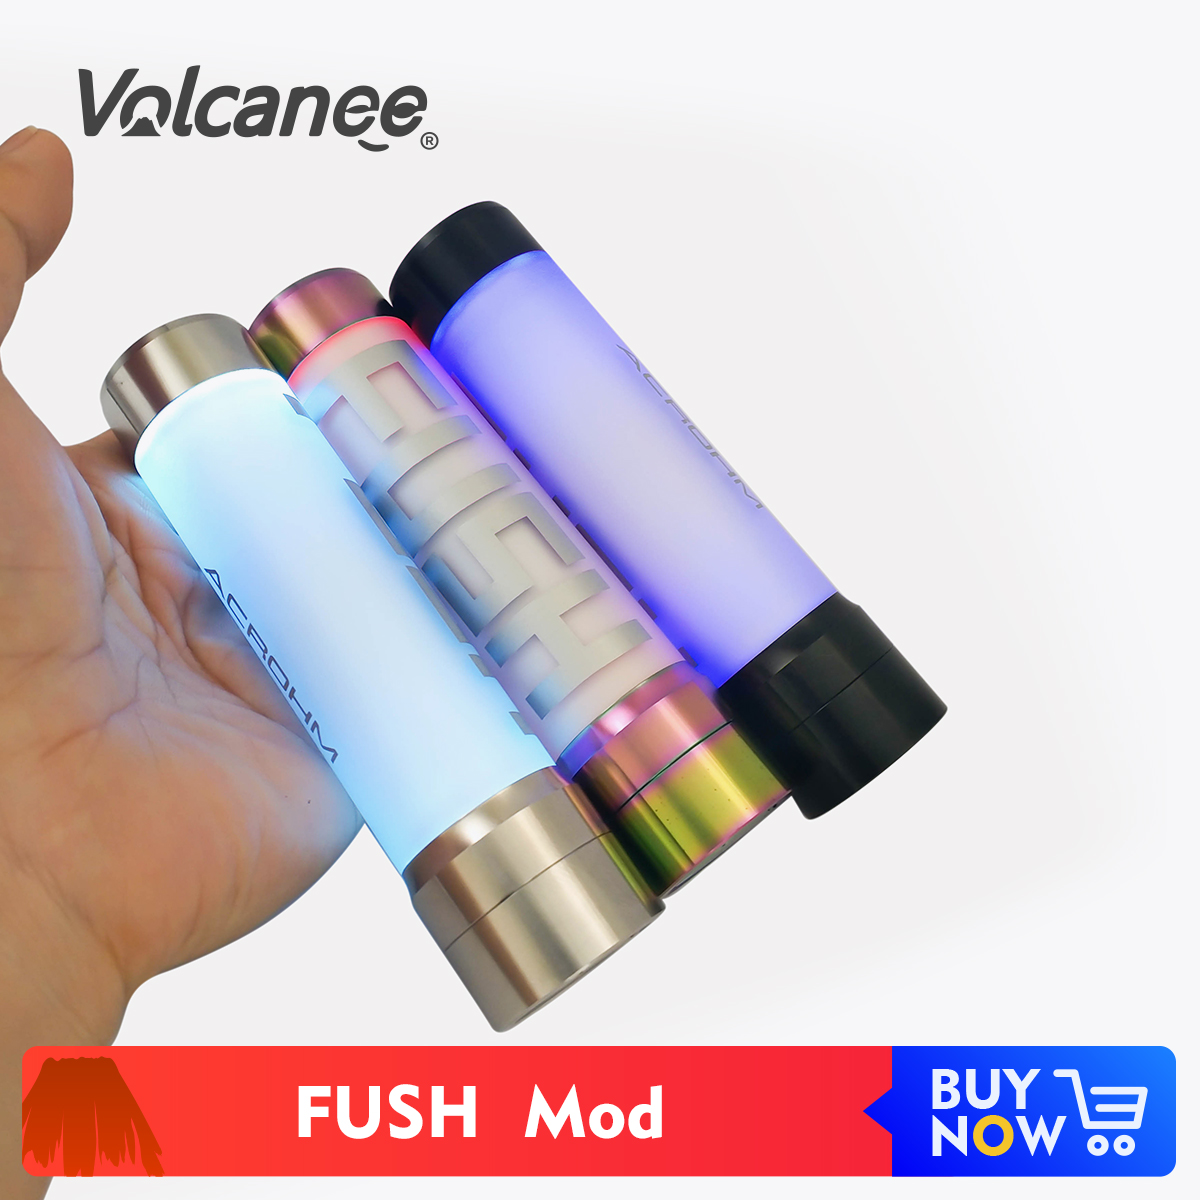 Volcanee FUSH Mechanical Mod 304 Stainless Steel Material 510 Thread Fit 18650 Battery Vape Mod Electronic Cigarette Accessories